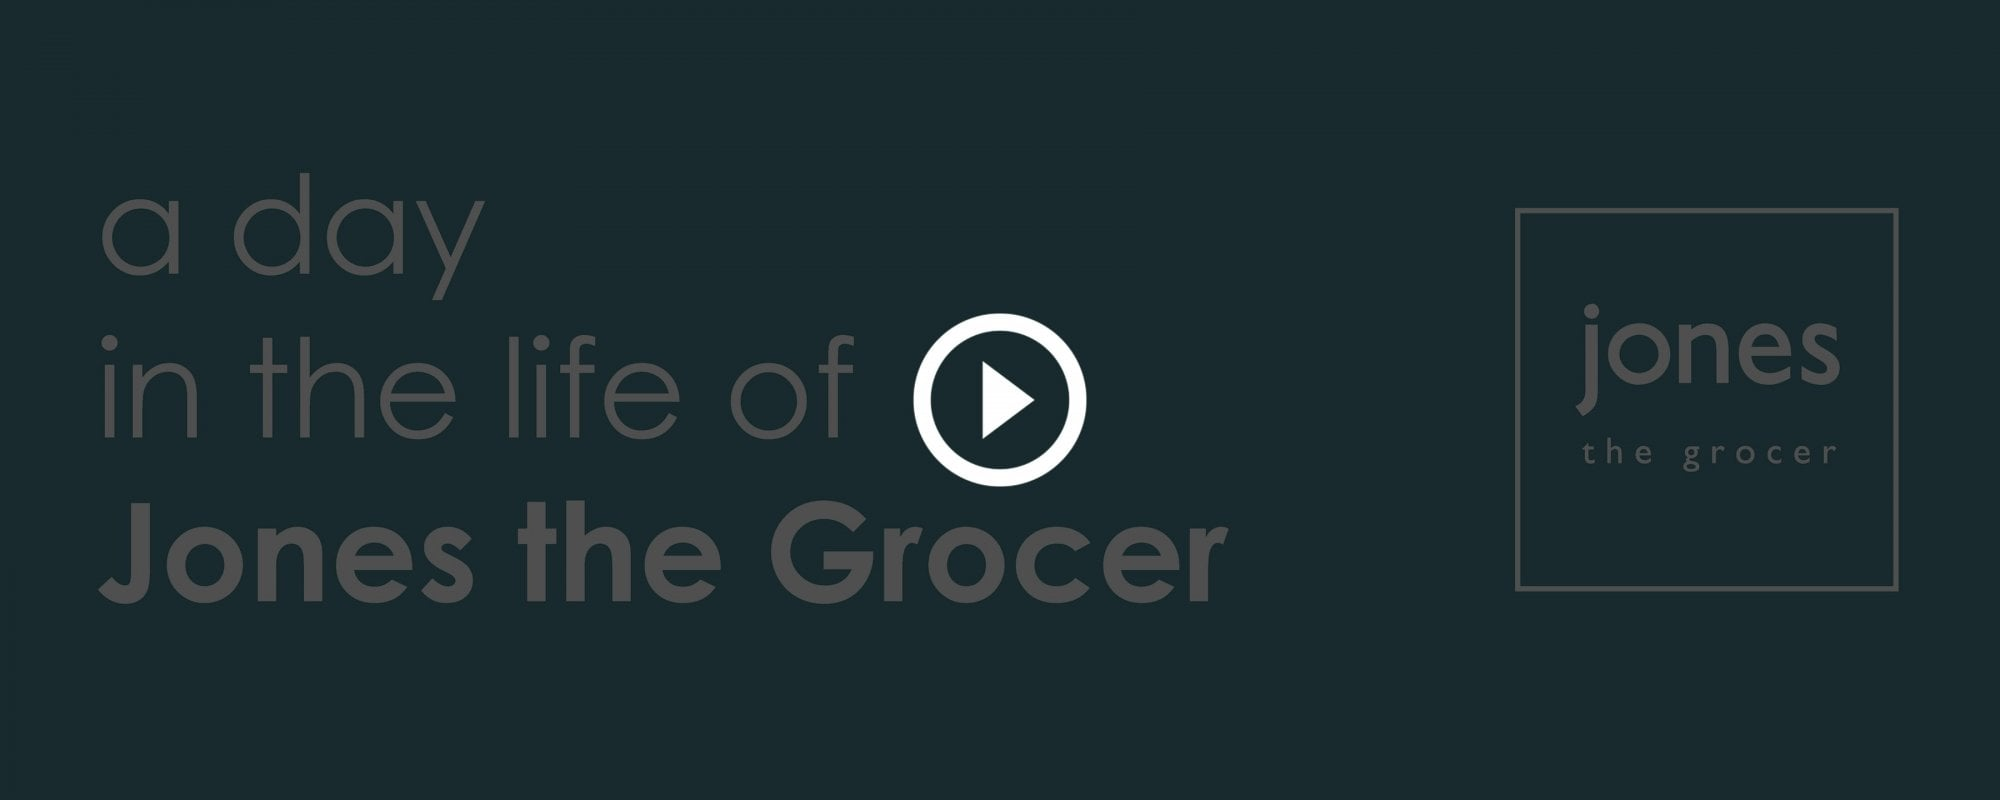 A Day in the Life of Jones the Grocer